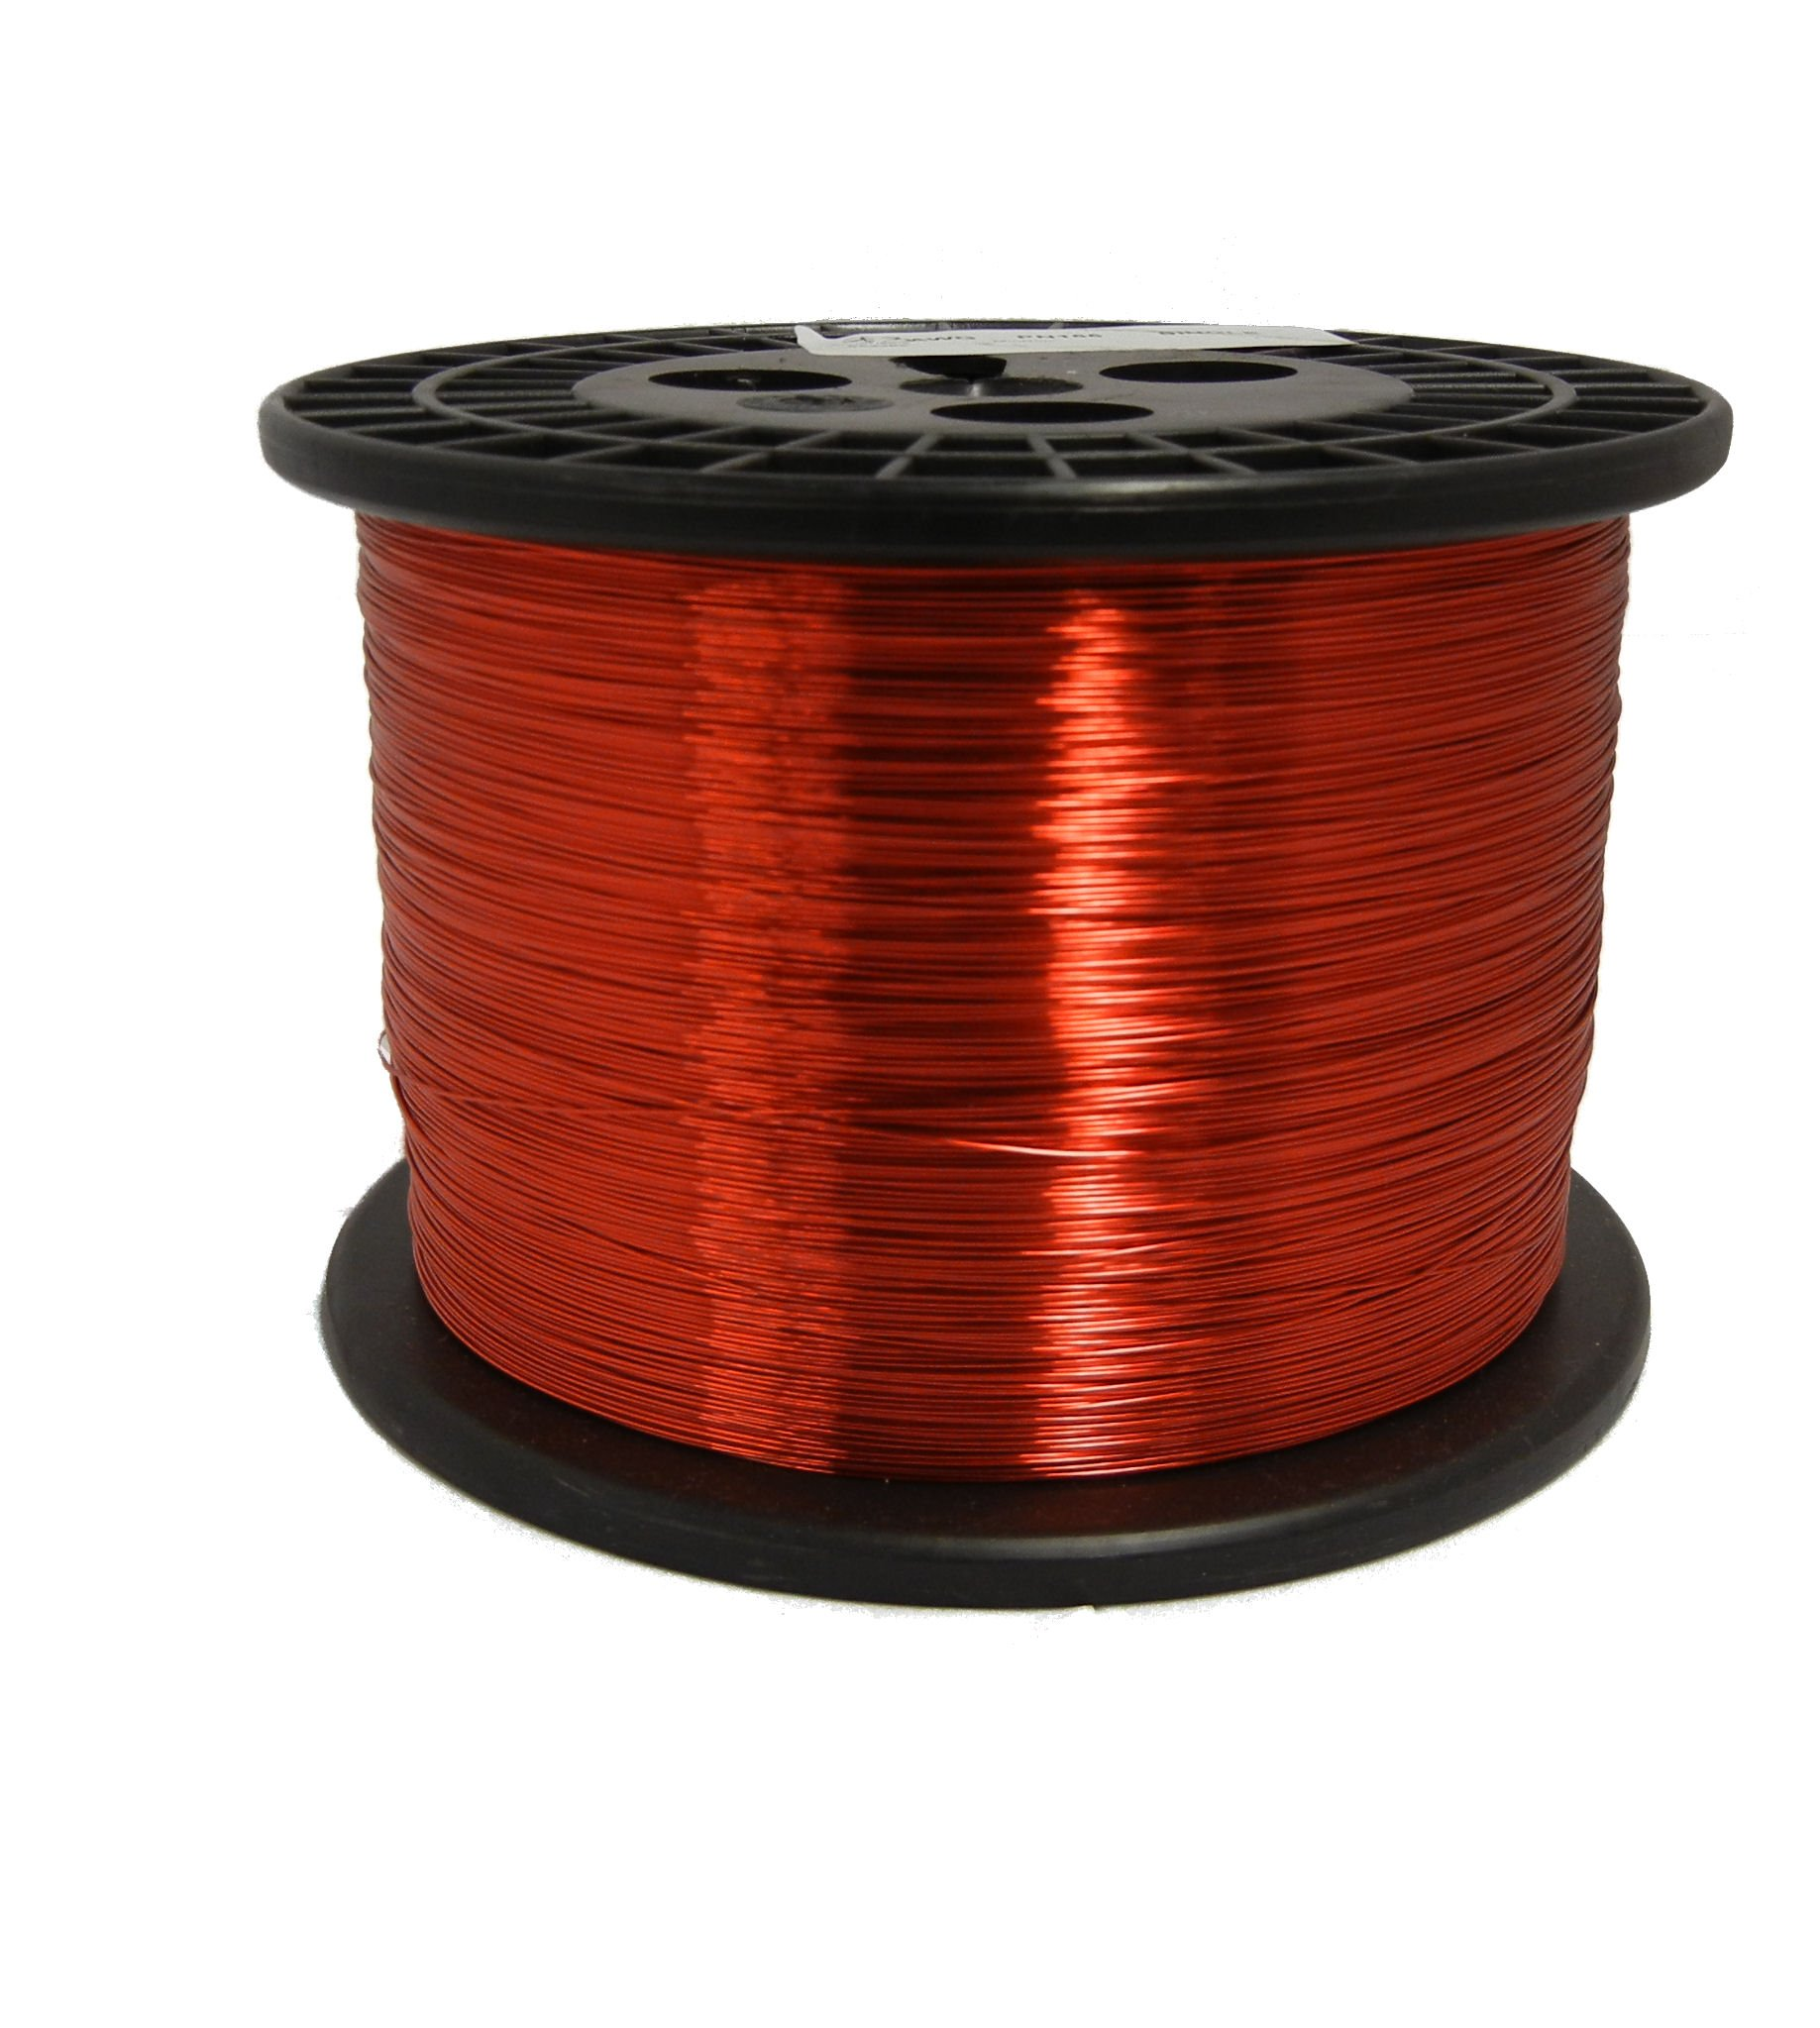 Remington Industries 19SNS Magnet Wire, Enameled Copper Wire, 19 AWG, 5.0 lb, 1265' Length, 0.0370'' Diameter, Red